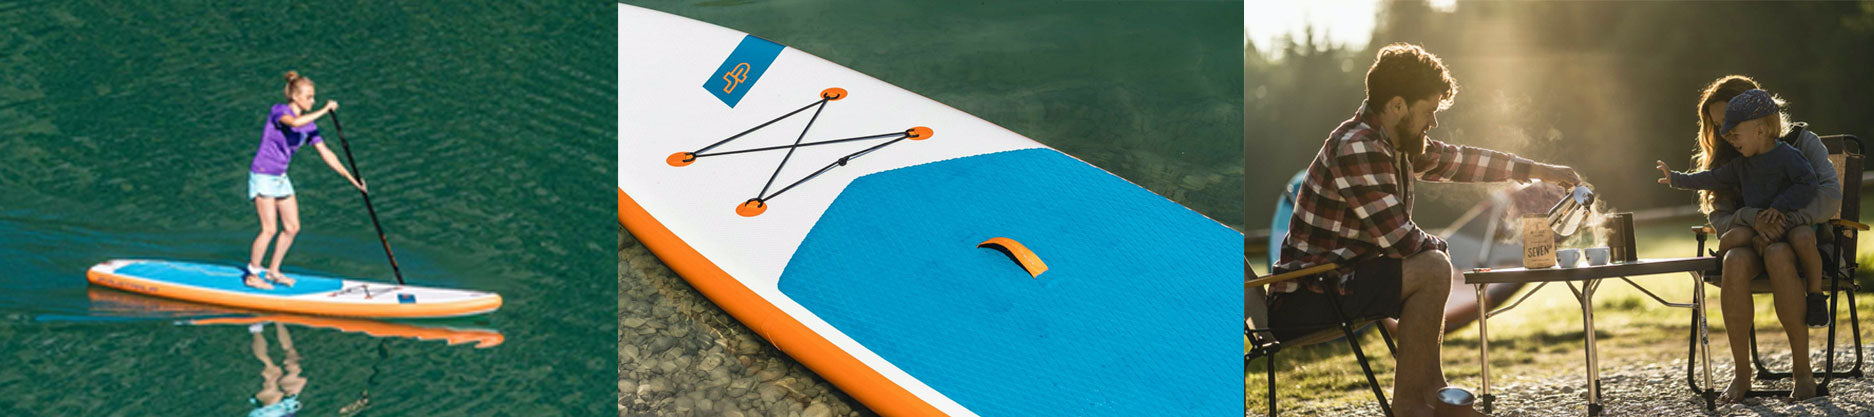 JP Superlight Inflatable SUP Board 2020